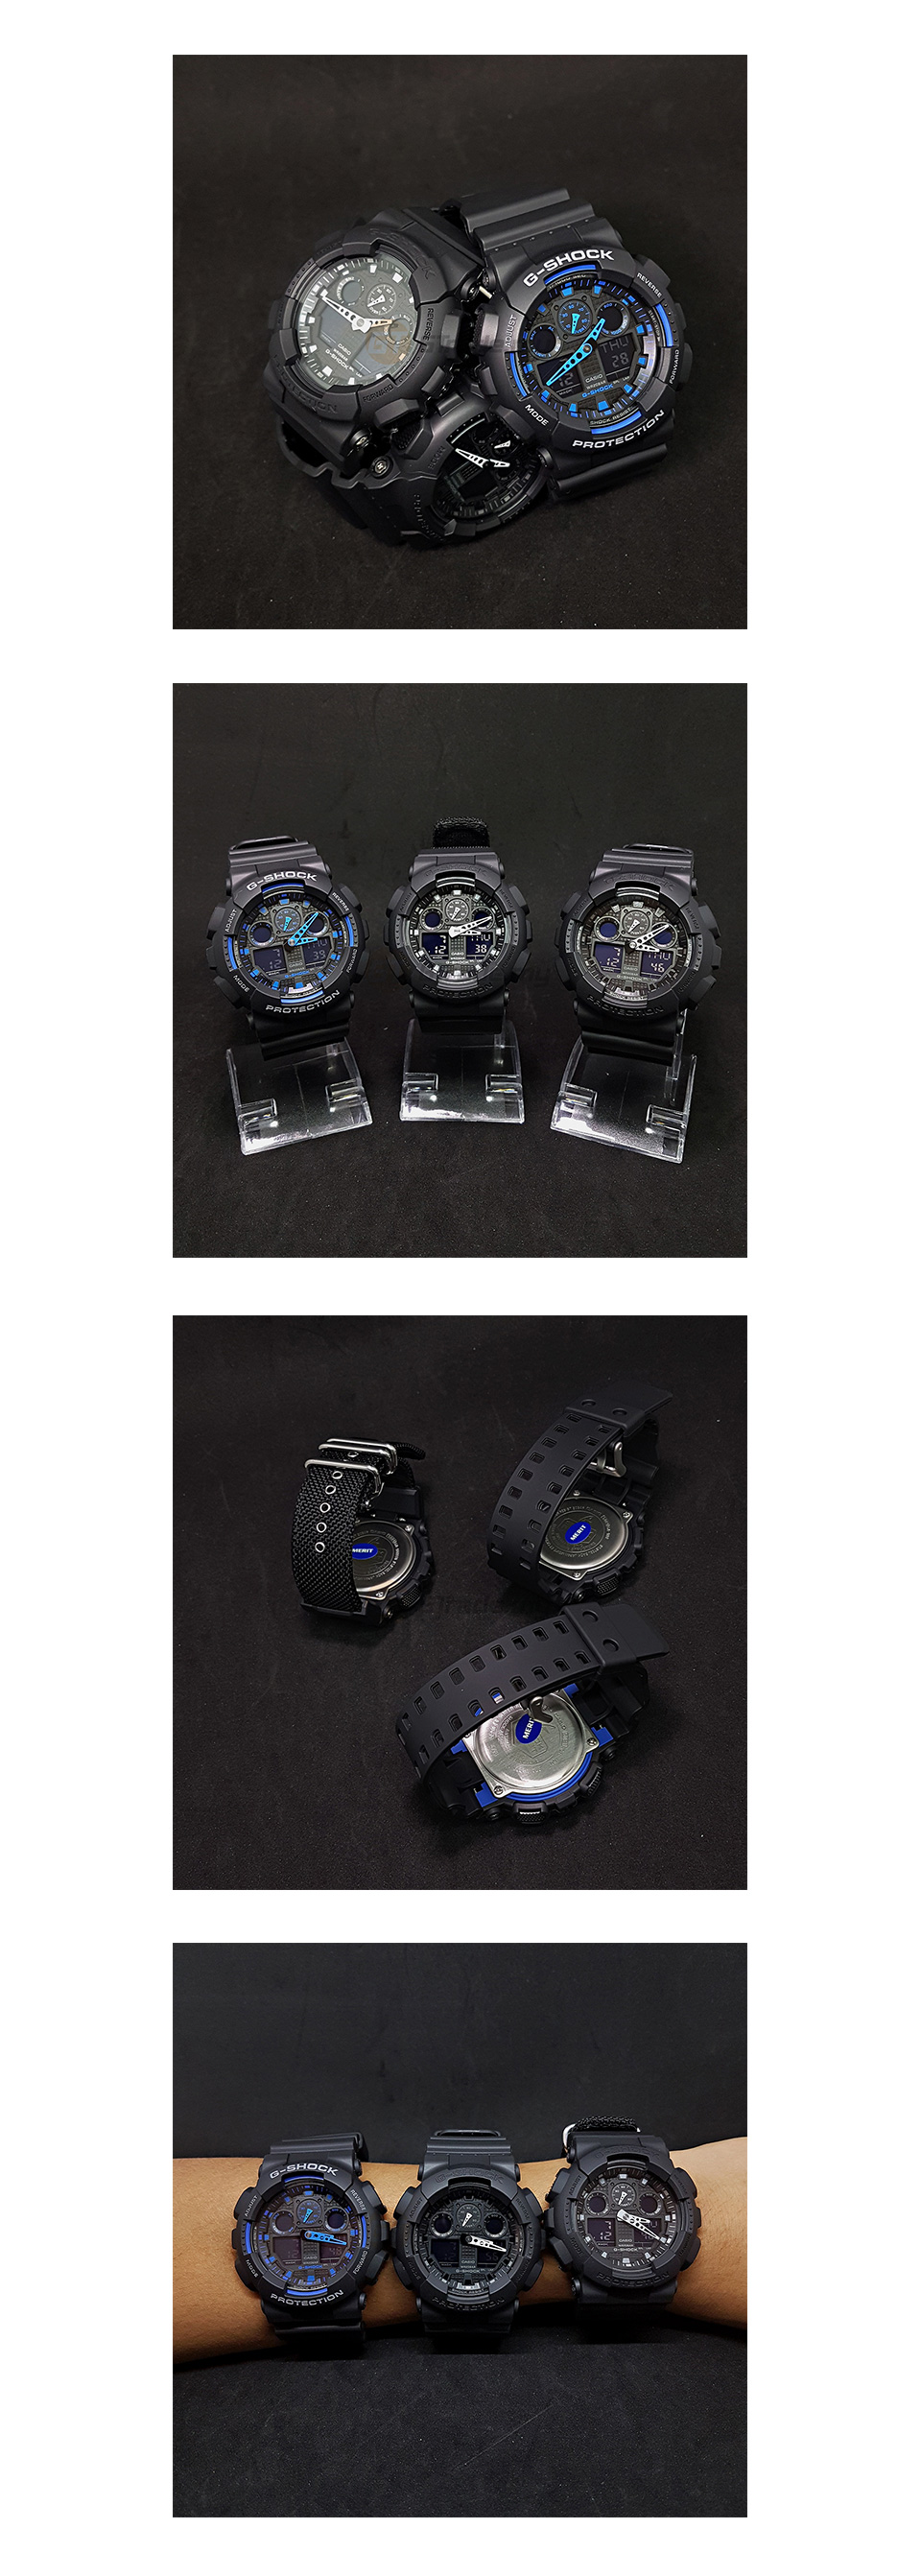 casio-g-shock-magnetic-resistant-watch-large-face-200-meter-water-resistance-ga-100-1a2-p